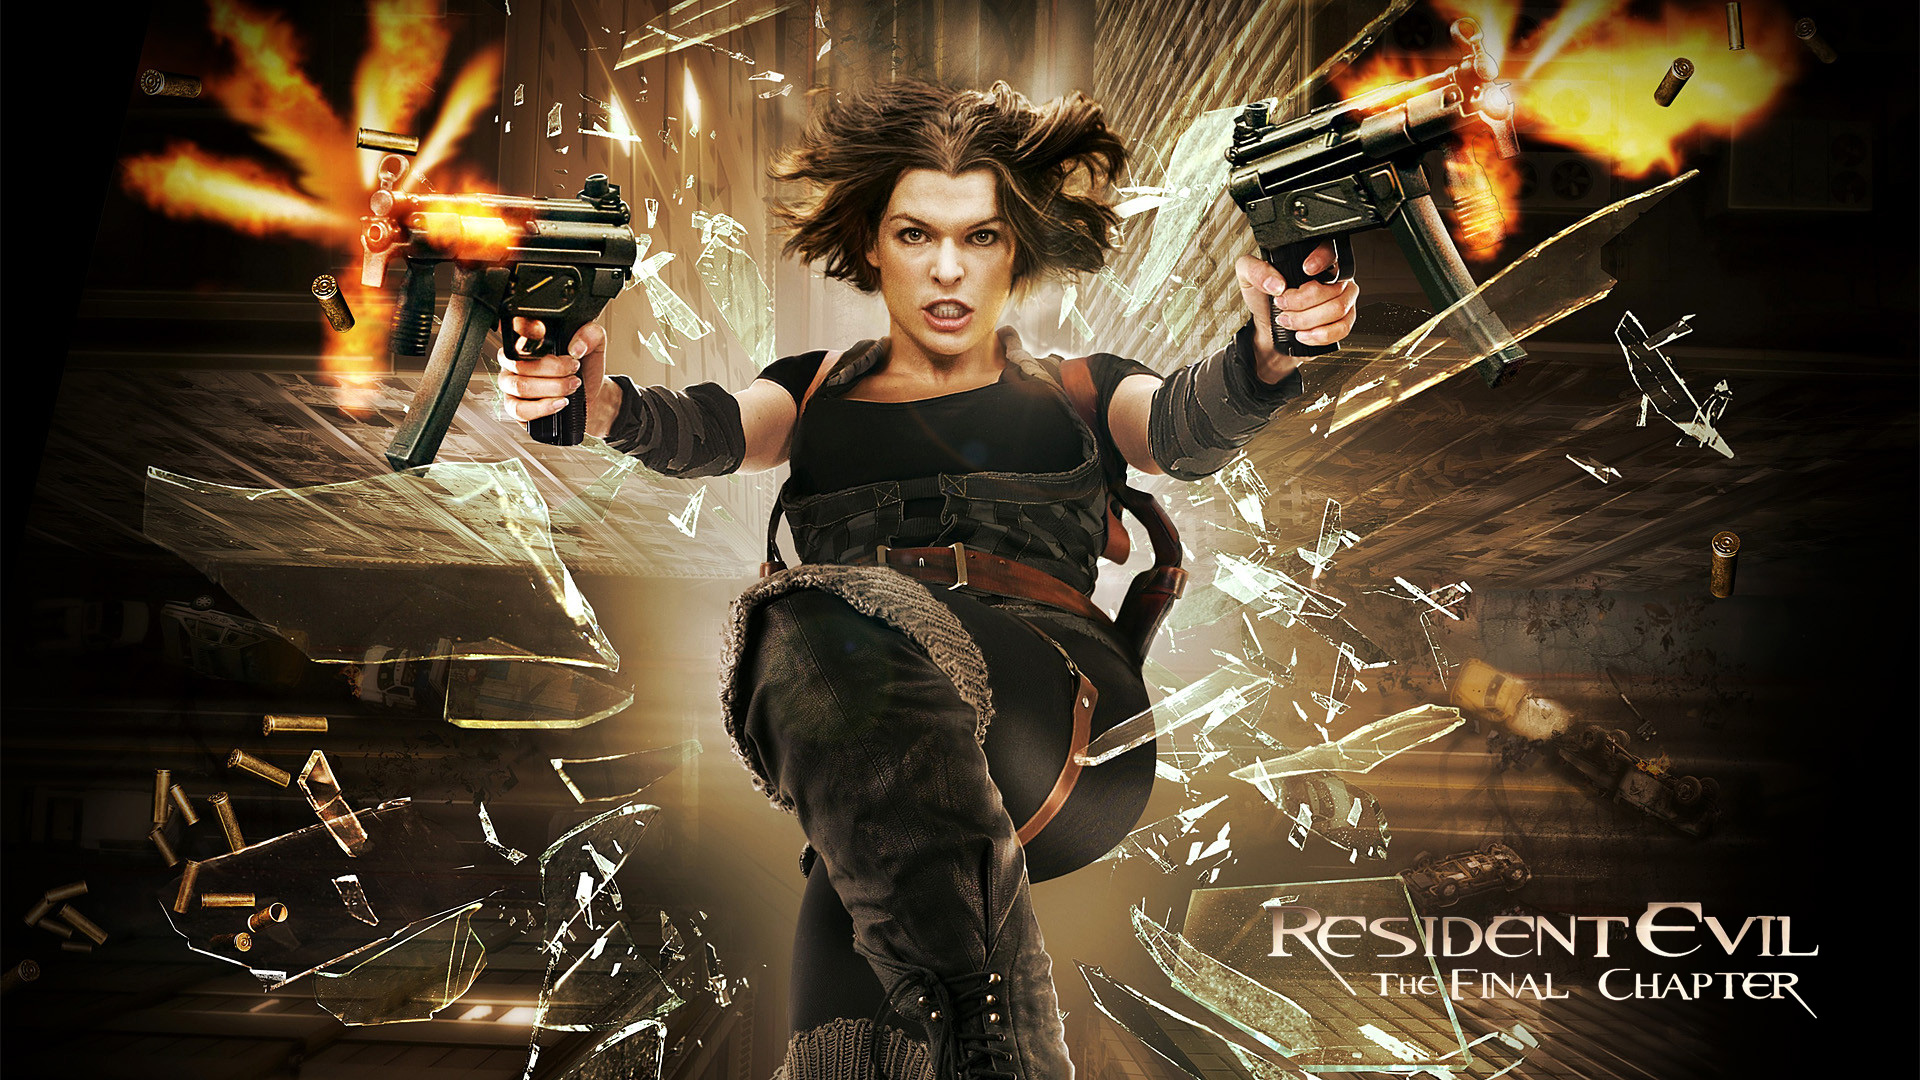 Resident Evil: The Final Chapter HD Wallpapers